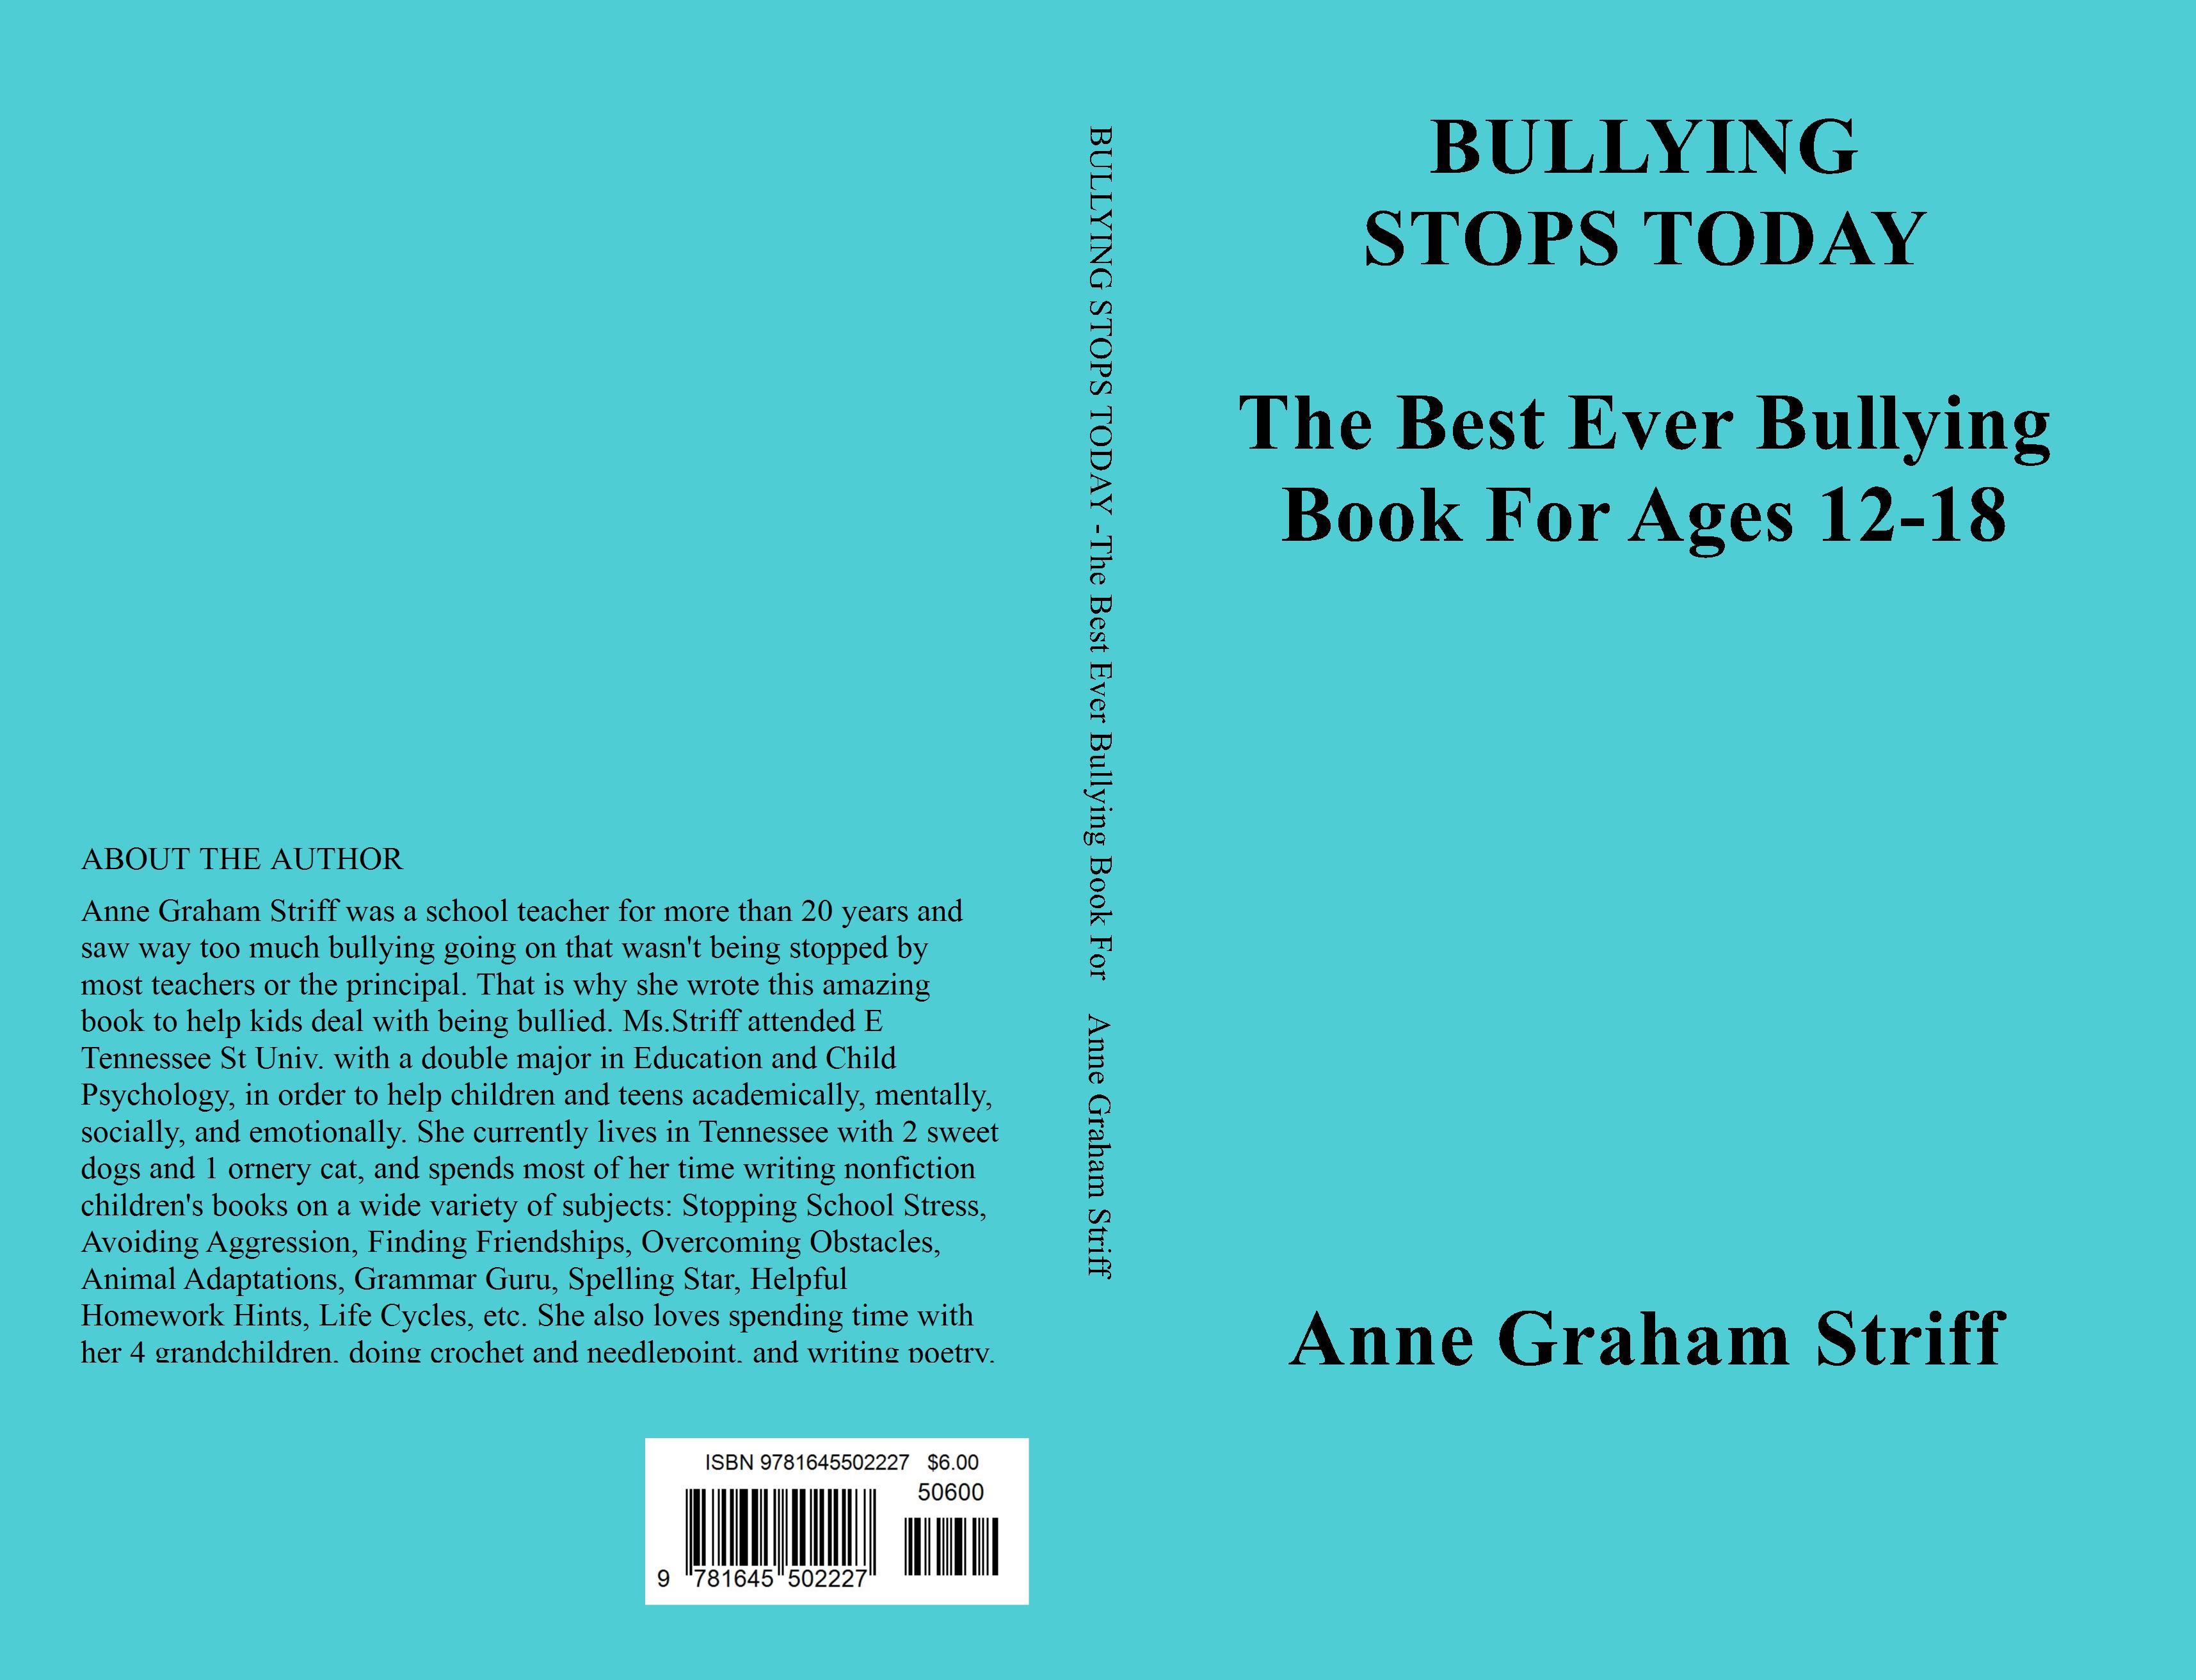 BULLYING STOPS TODAY -The Best Ever Bullying Book For Ages 12-18 cover image